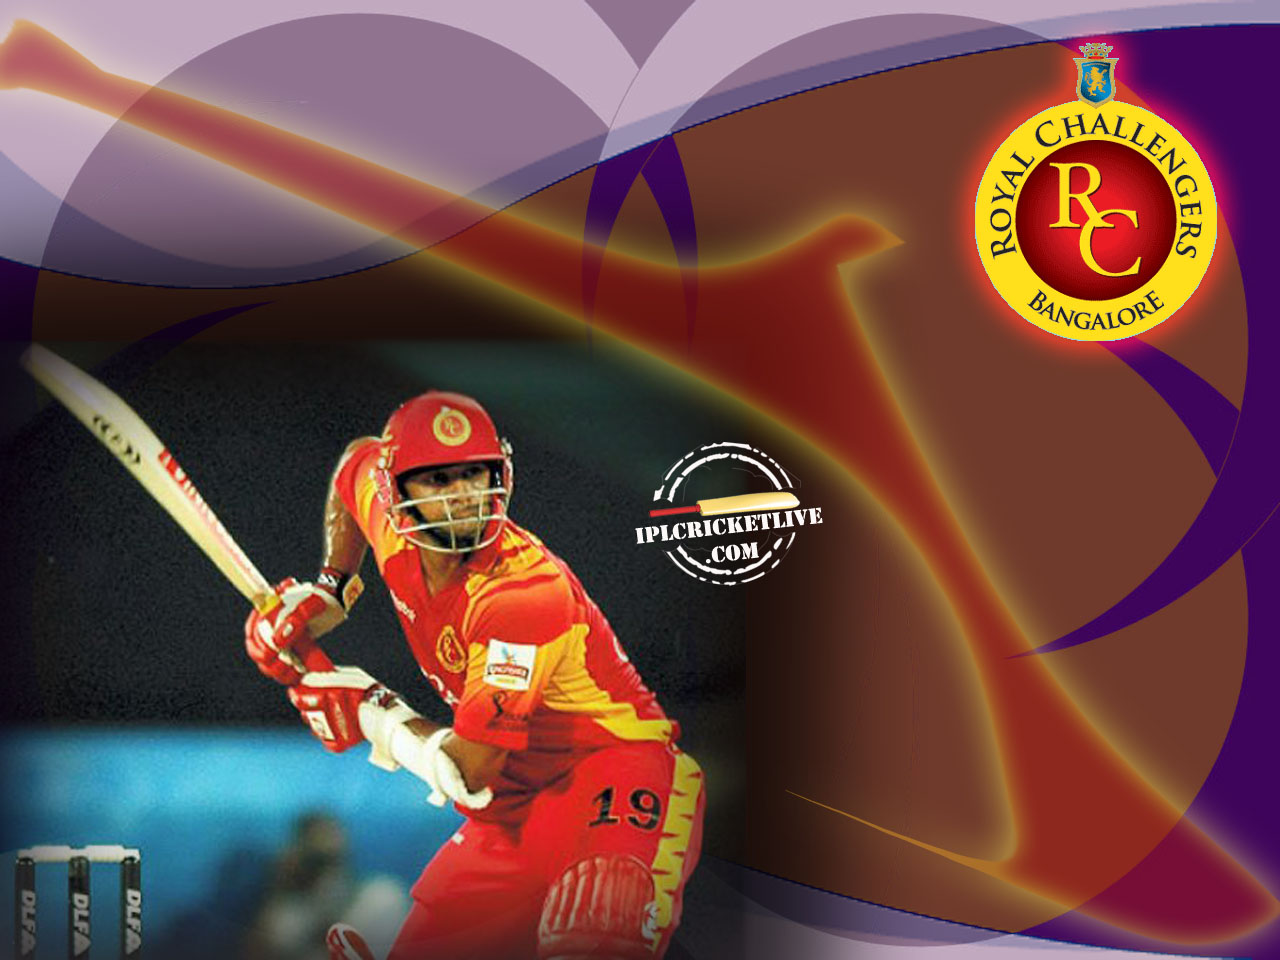 cricket comments royal challengers bangalore have been eliminated